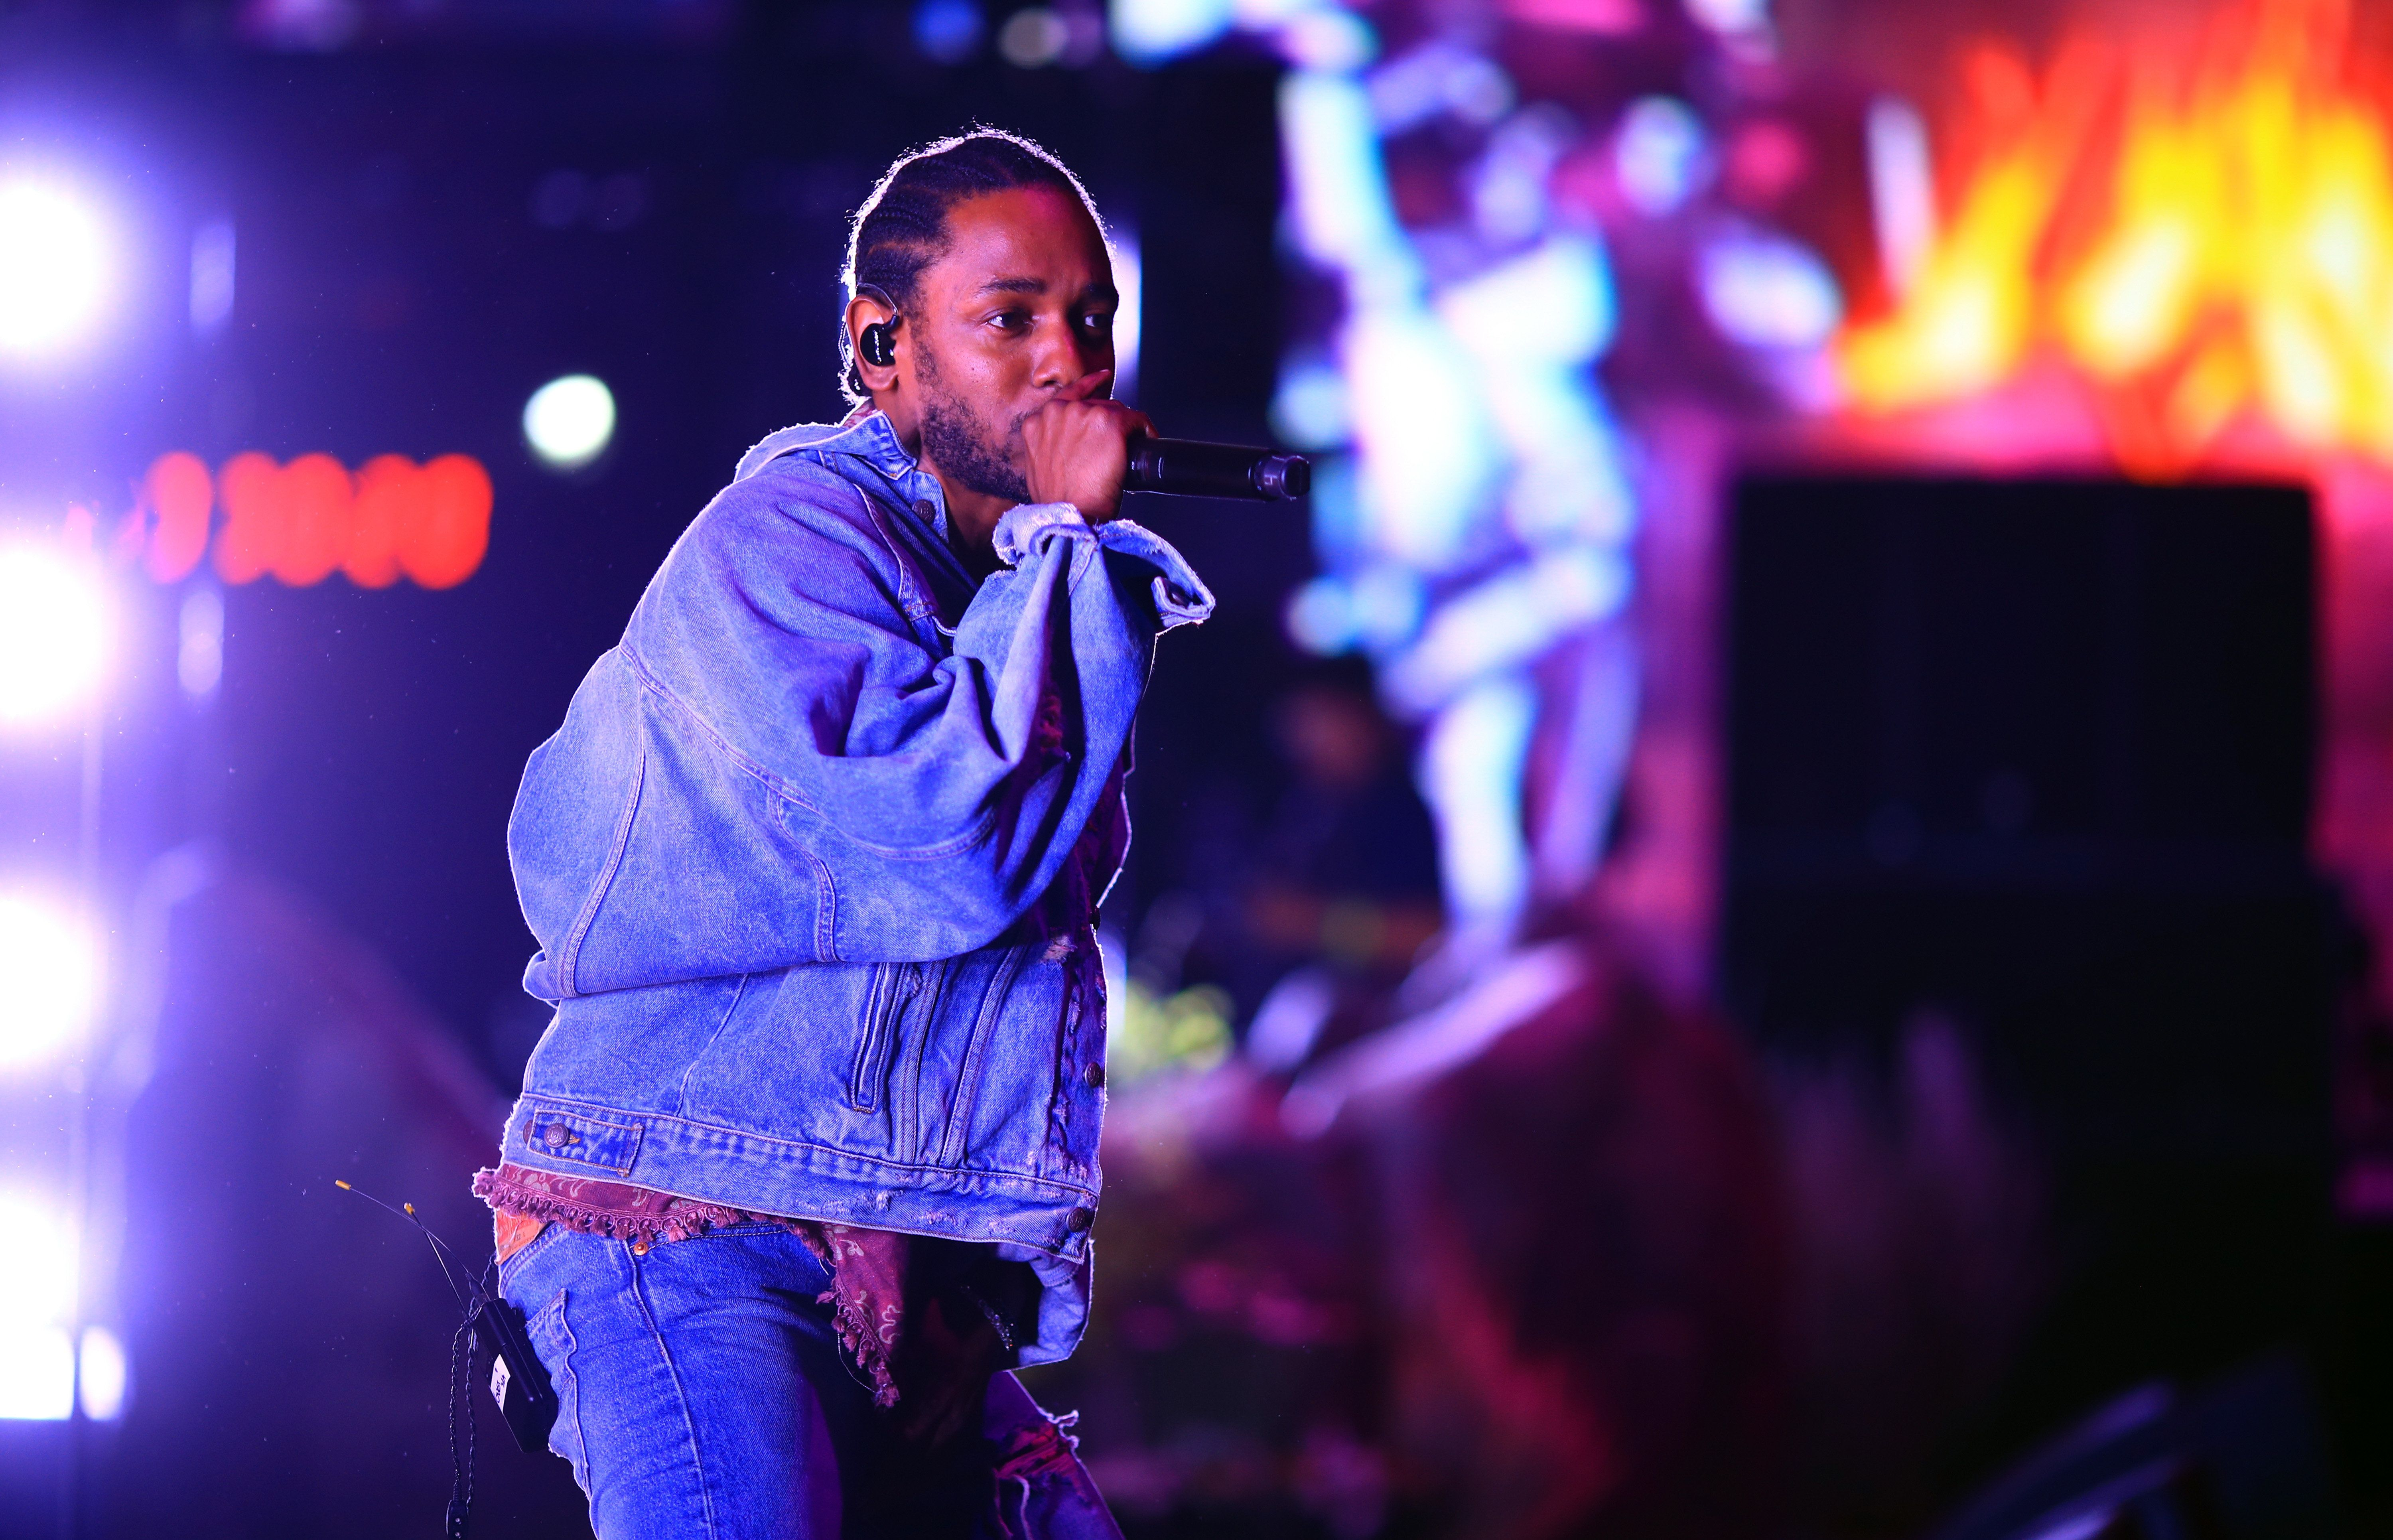 Kendrick performed at Coachella over the